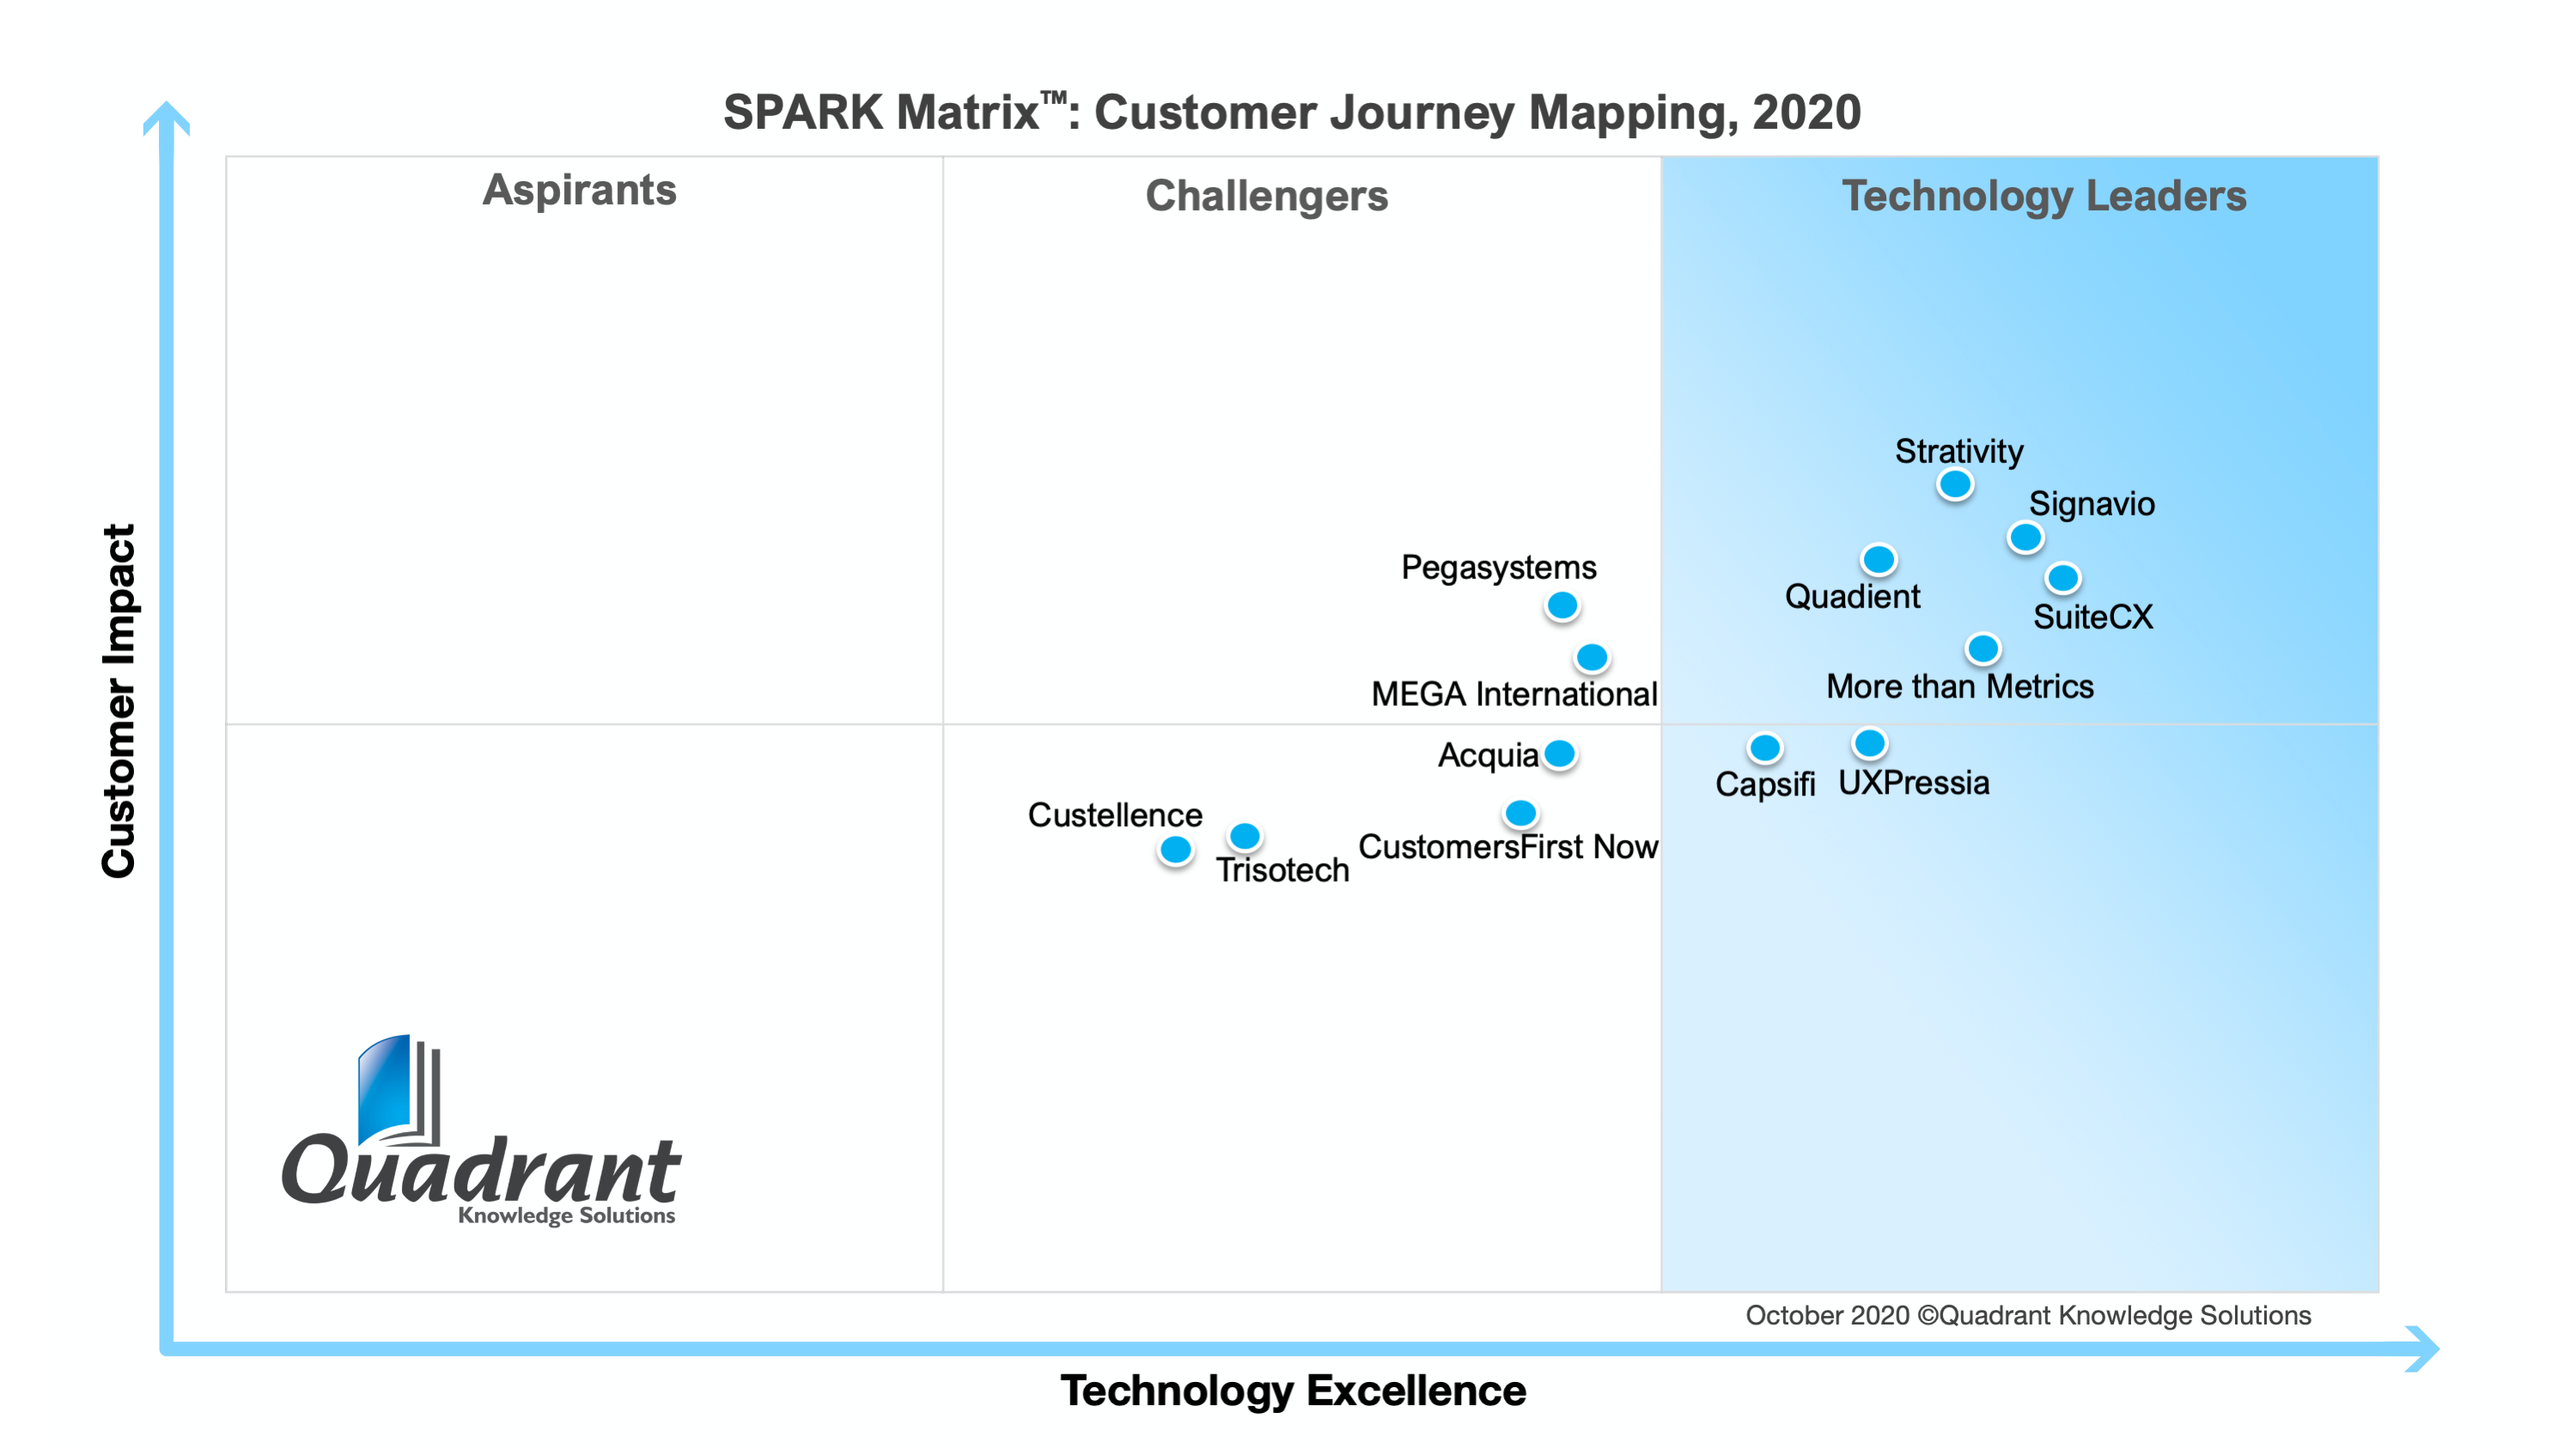 Spark Matrix for Customer Journey Mapping Vendors (2020 - by Quadrant Knowledge Solutions)